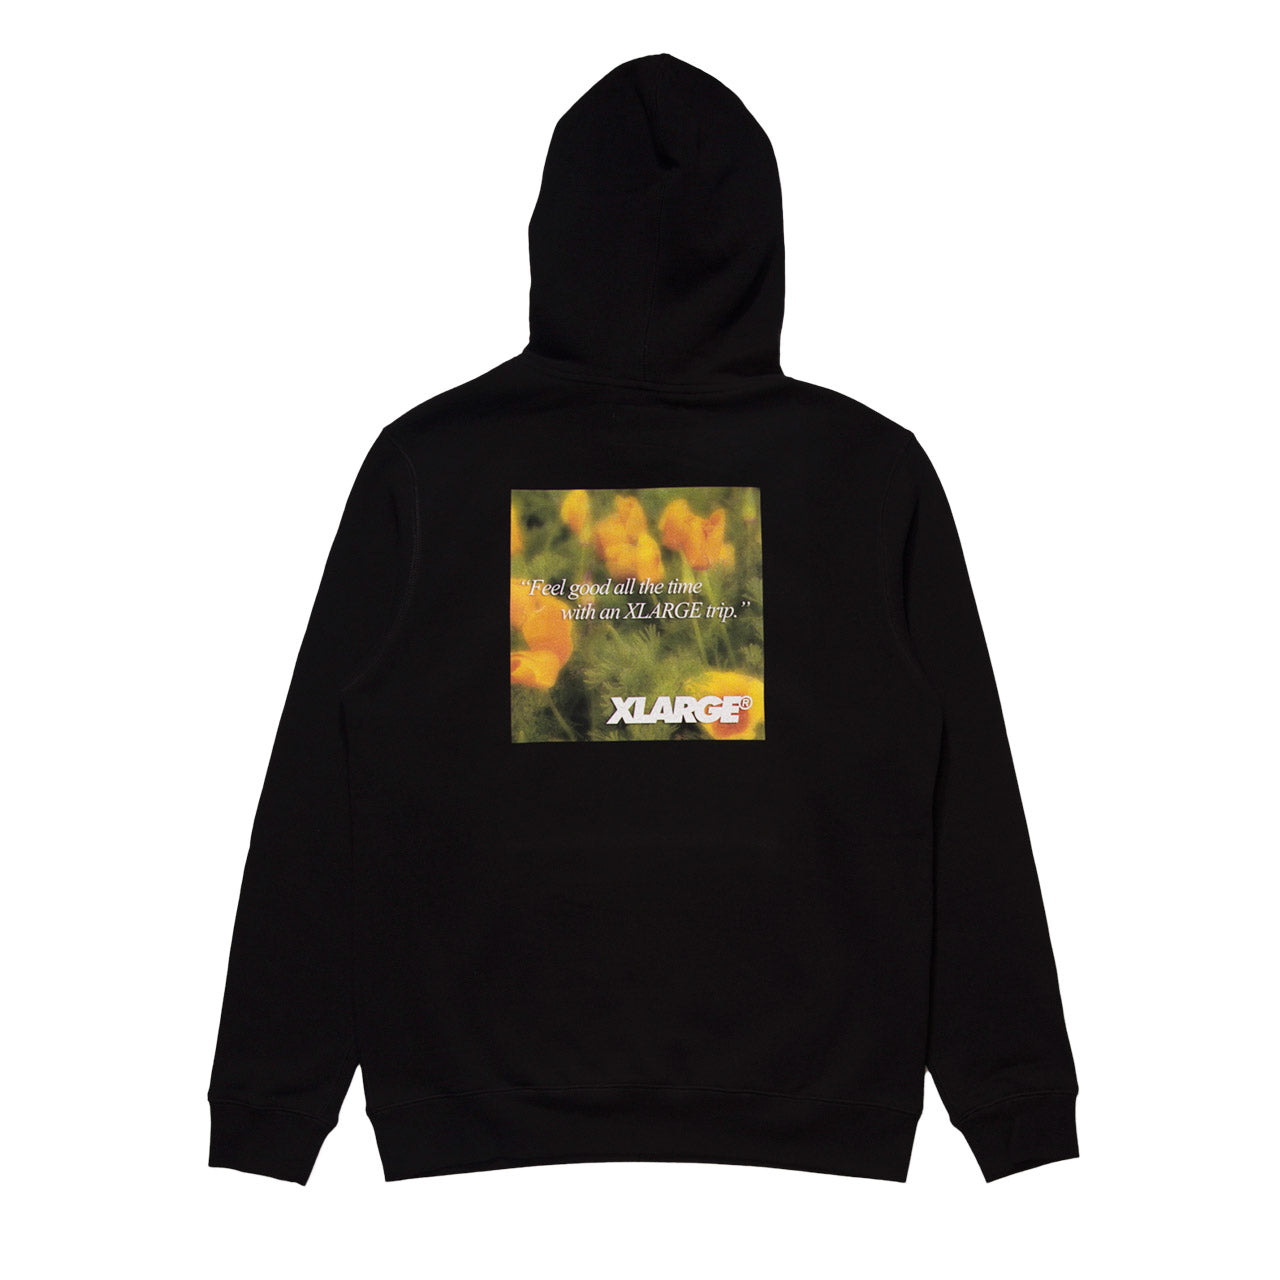 Why Its Good To Pull Over To Side Of >> Side Effect Pullover Hoodie Xlarge